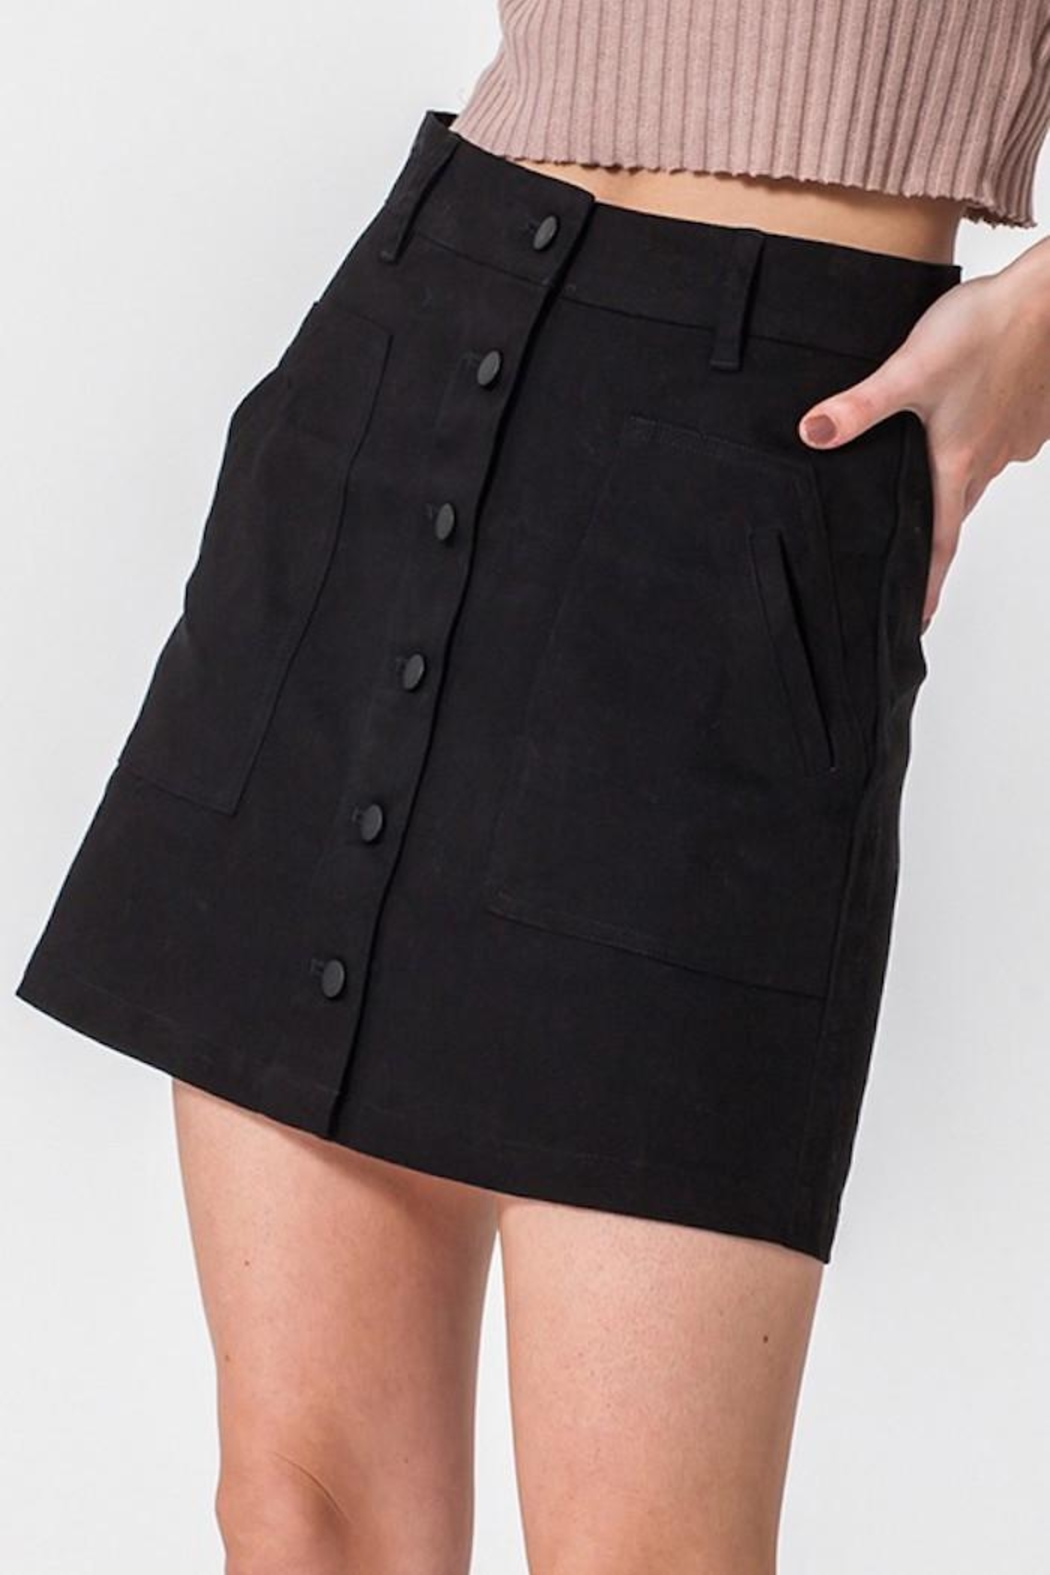 HYFVE Button Up Skirt - Side Cropped Image